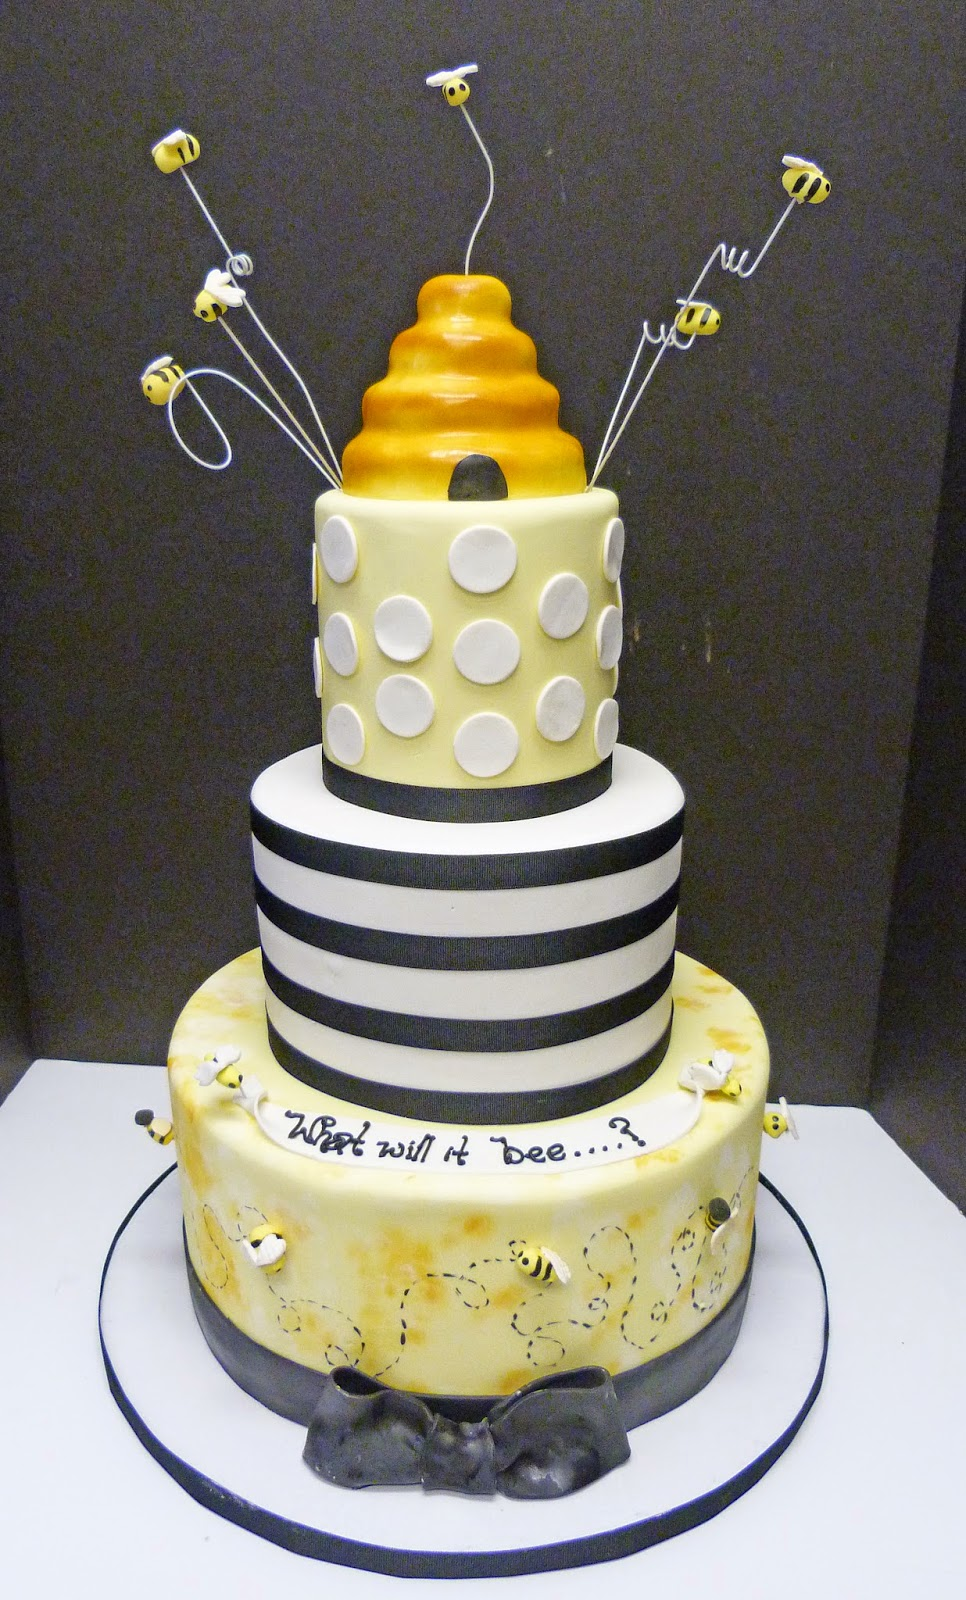 What Will Baby Bee? Shower Cake Marion, Massachusetts